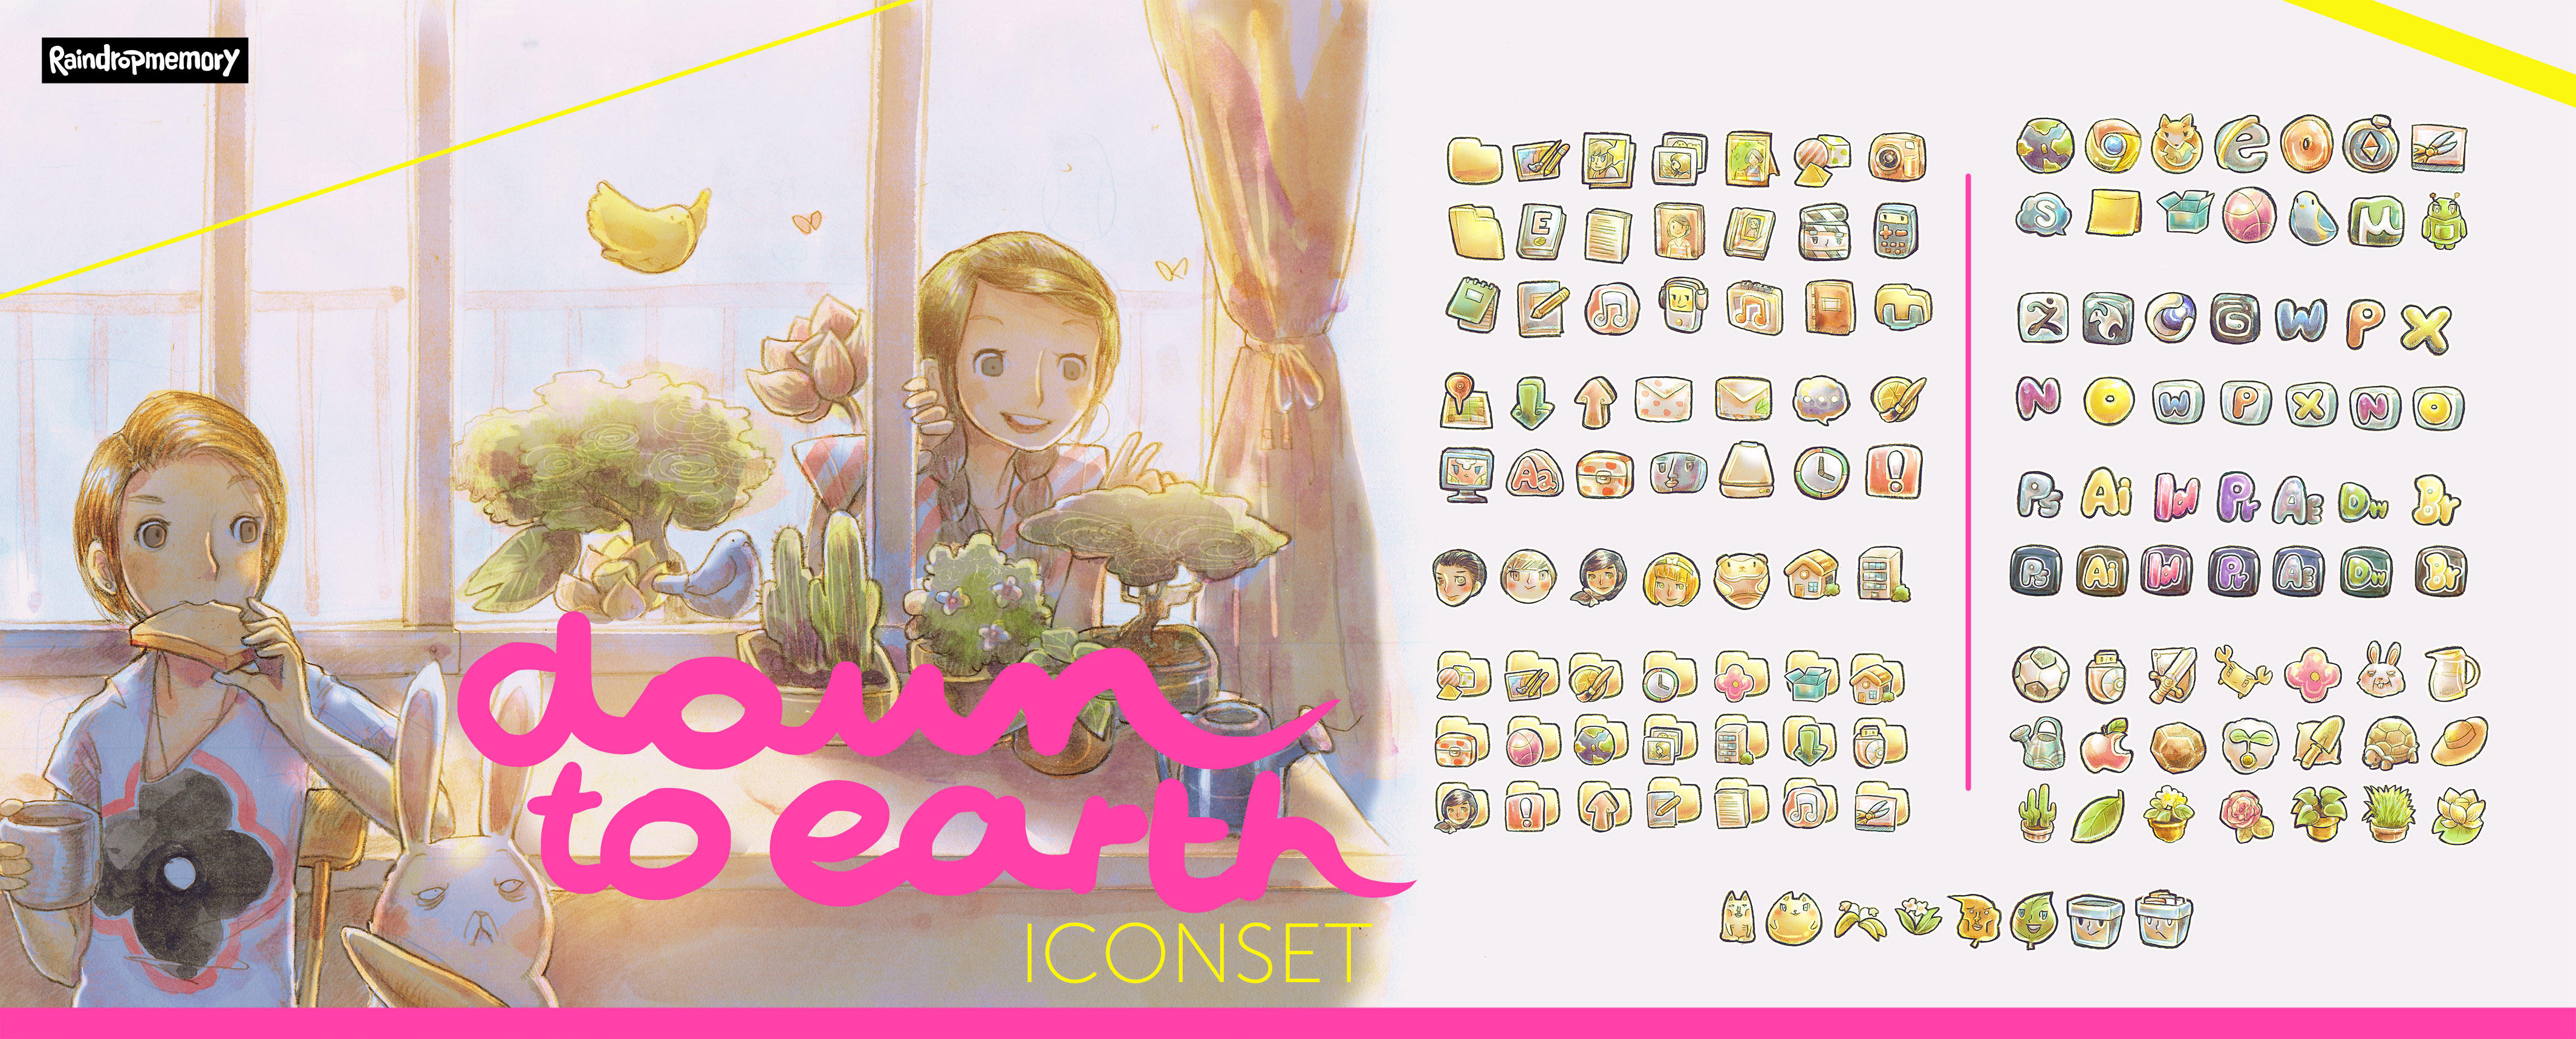 [down to earth] Iconset by Raindropmemory